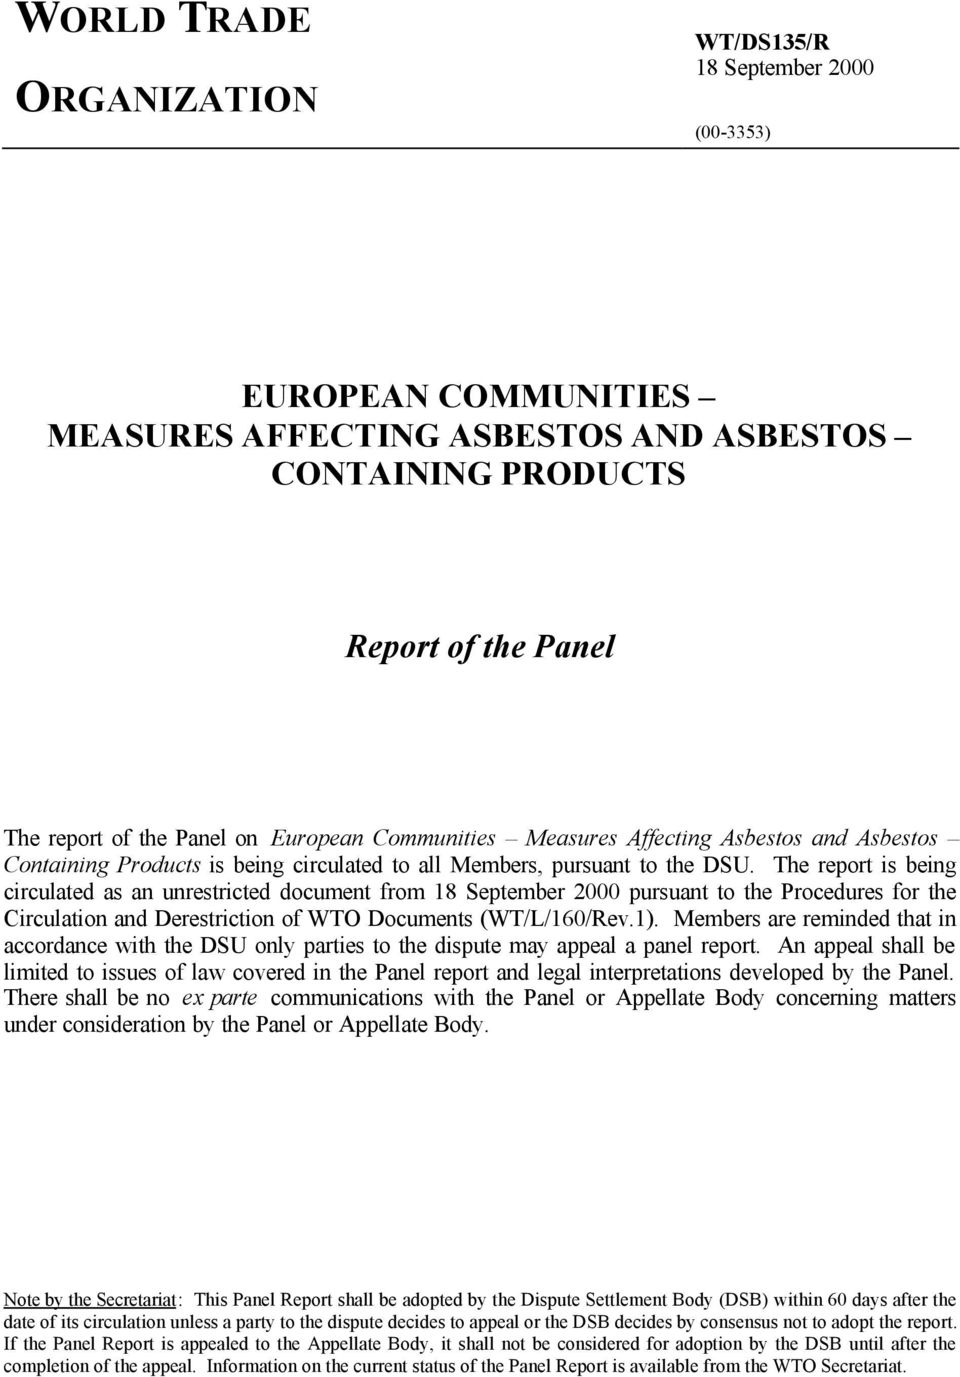 The report is being circulated as an unrestricted document from 18 September 2000 pursuant to the Procedures for the Circulation and Derestriction of WTO Documents (WT/L/160/Rev.1).